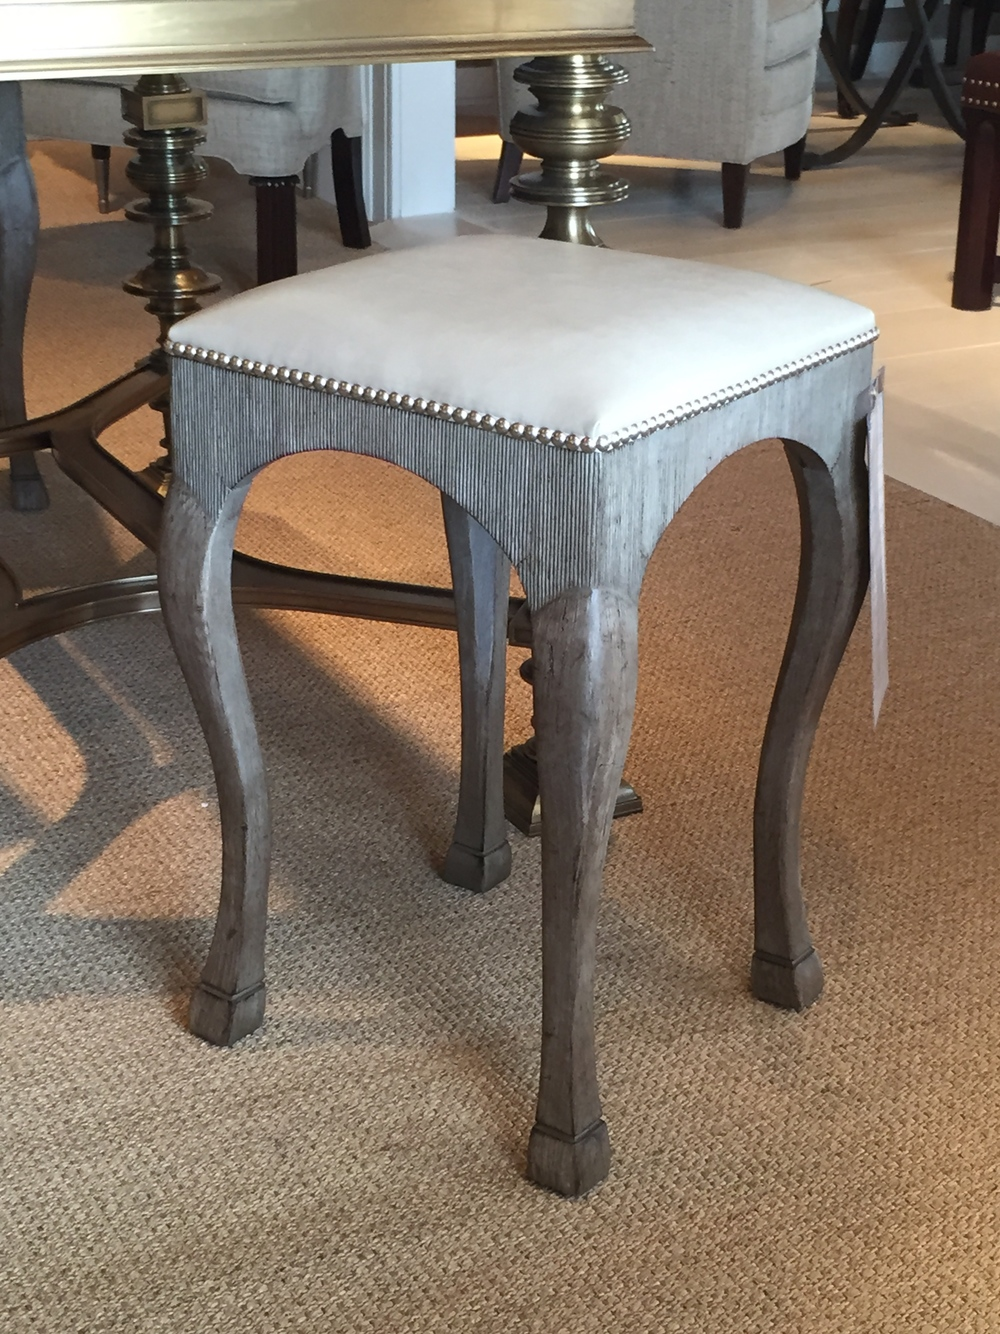 I absolutely adore this stool! The would be fantastic at a  kitchen bar or dining table!